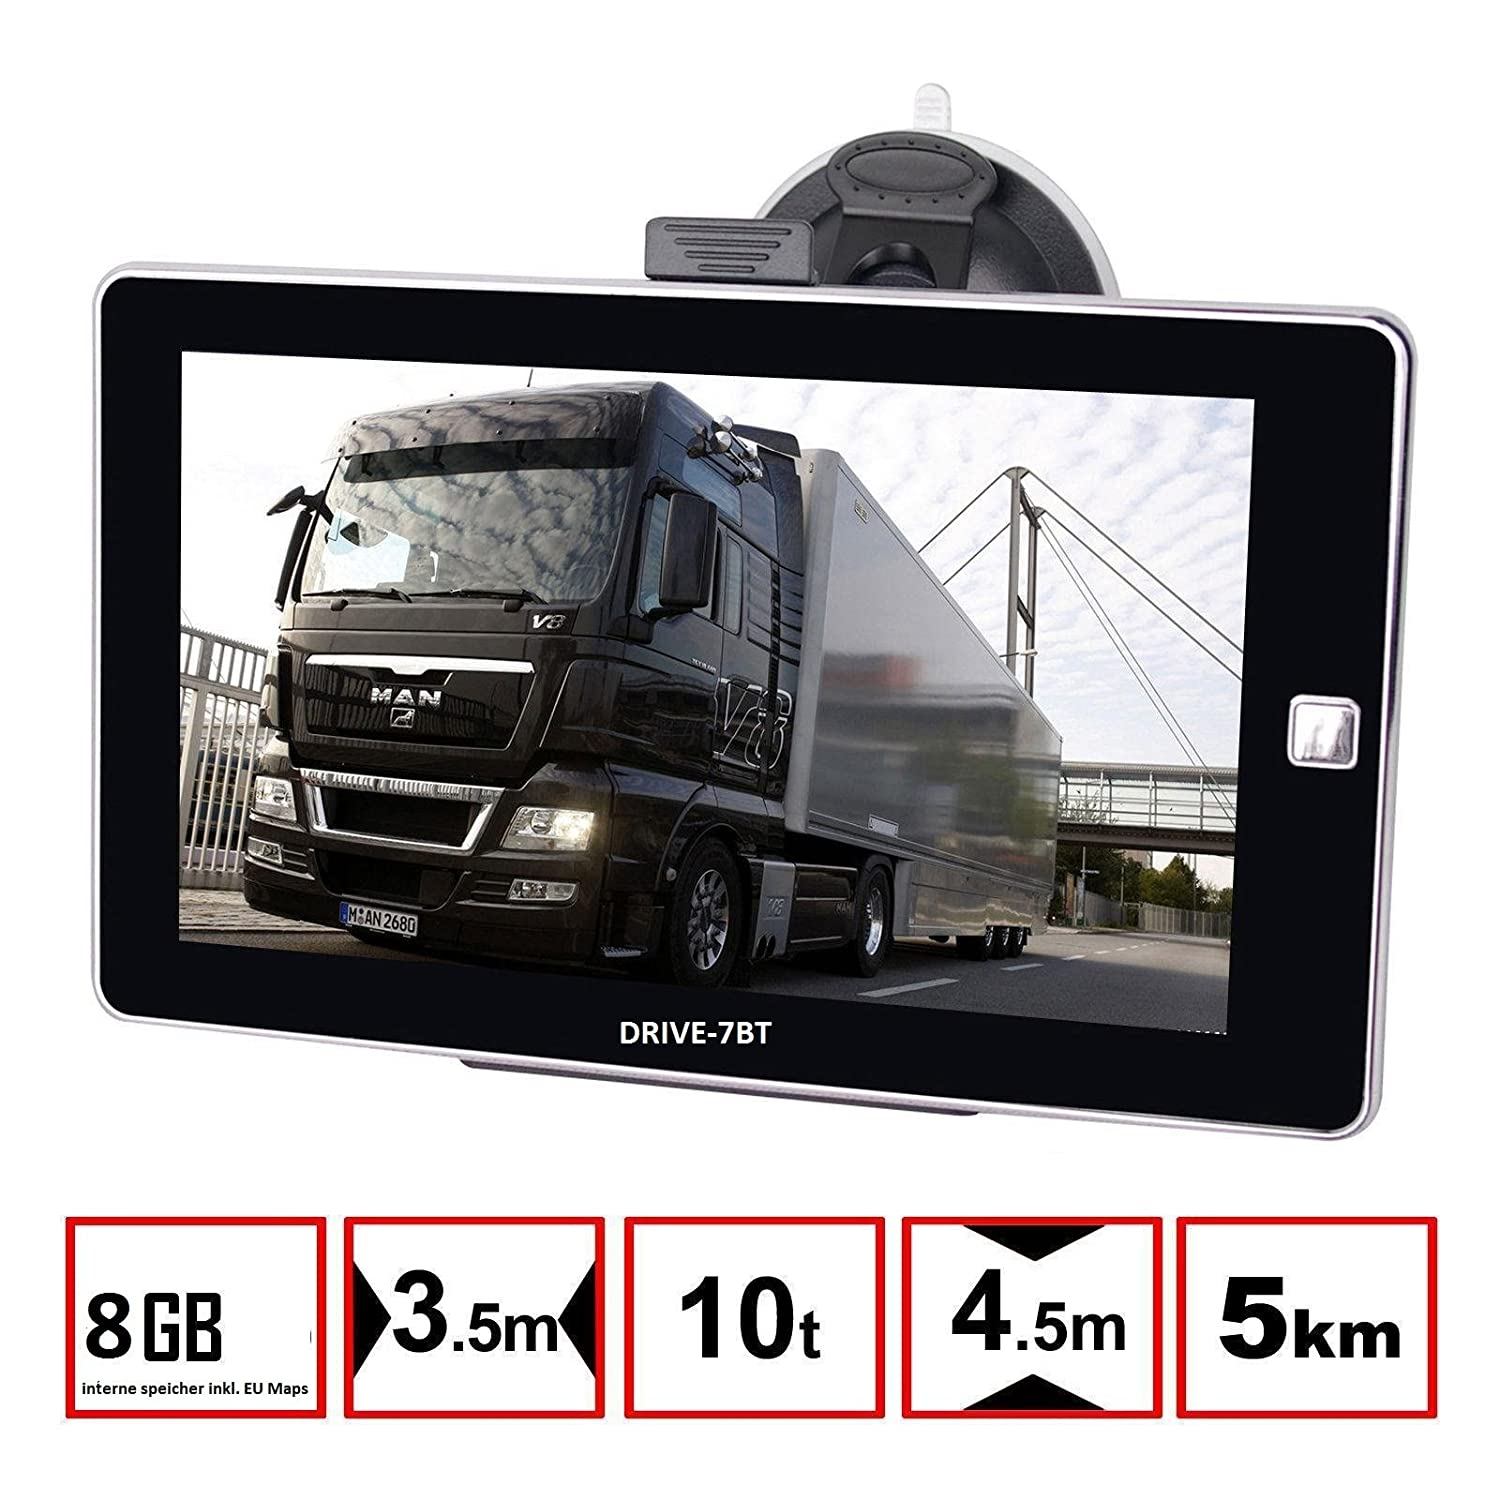 7 gps navigationsger t navi drive 7bt f r lkw pkw bus. Black Bedroom Furniture Sets. Home Design Ideas